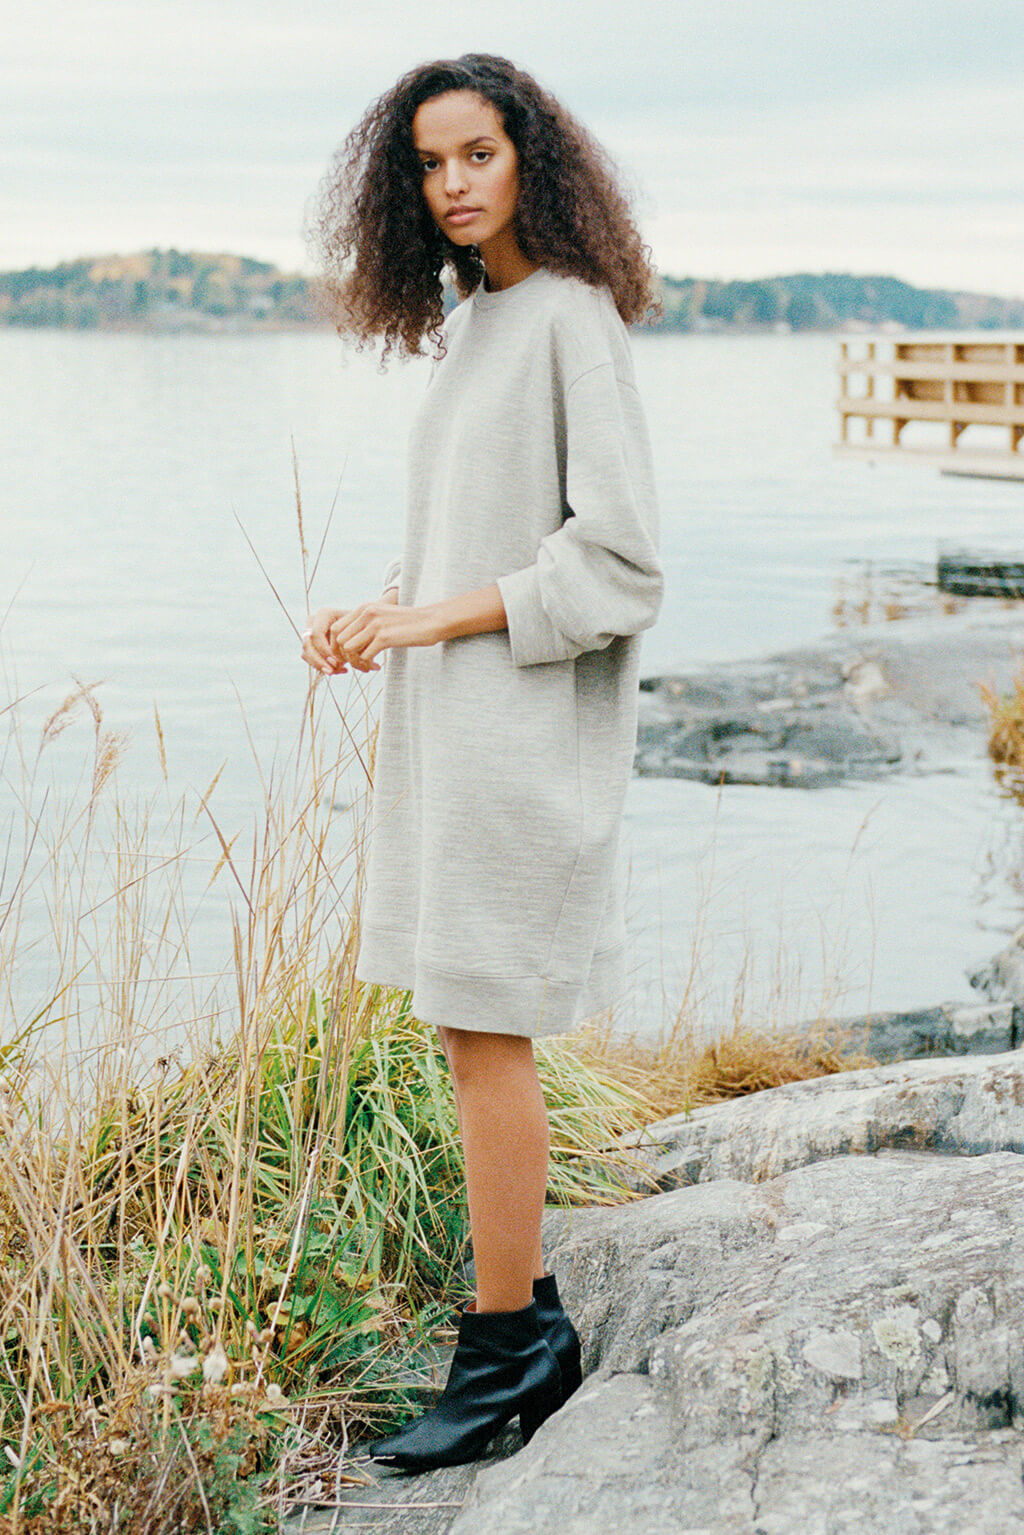 A woman of Swedish-African descent wearing an oversized sweatshirt dress that ends just above her knees looks into the camera, playing with reeds by the water. She is wearing the sweatshirt and a pair of ankle-high boots